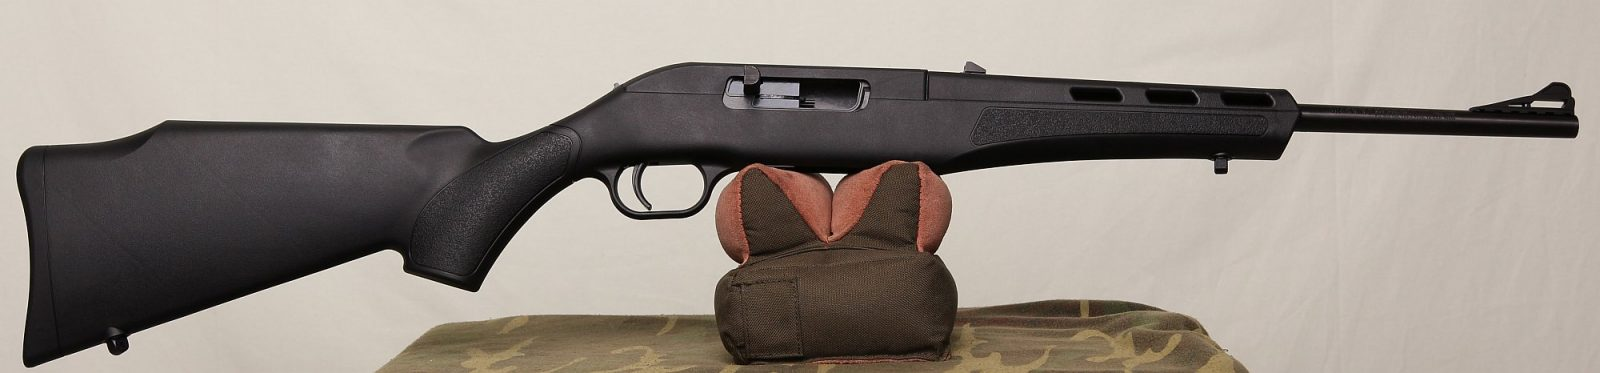 Mossberg Blaze Review | The Hunting Gear Guy